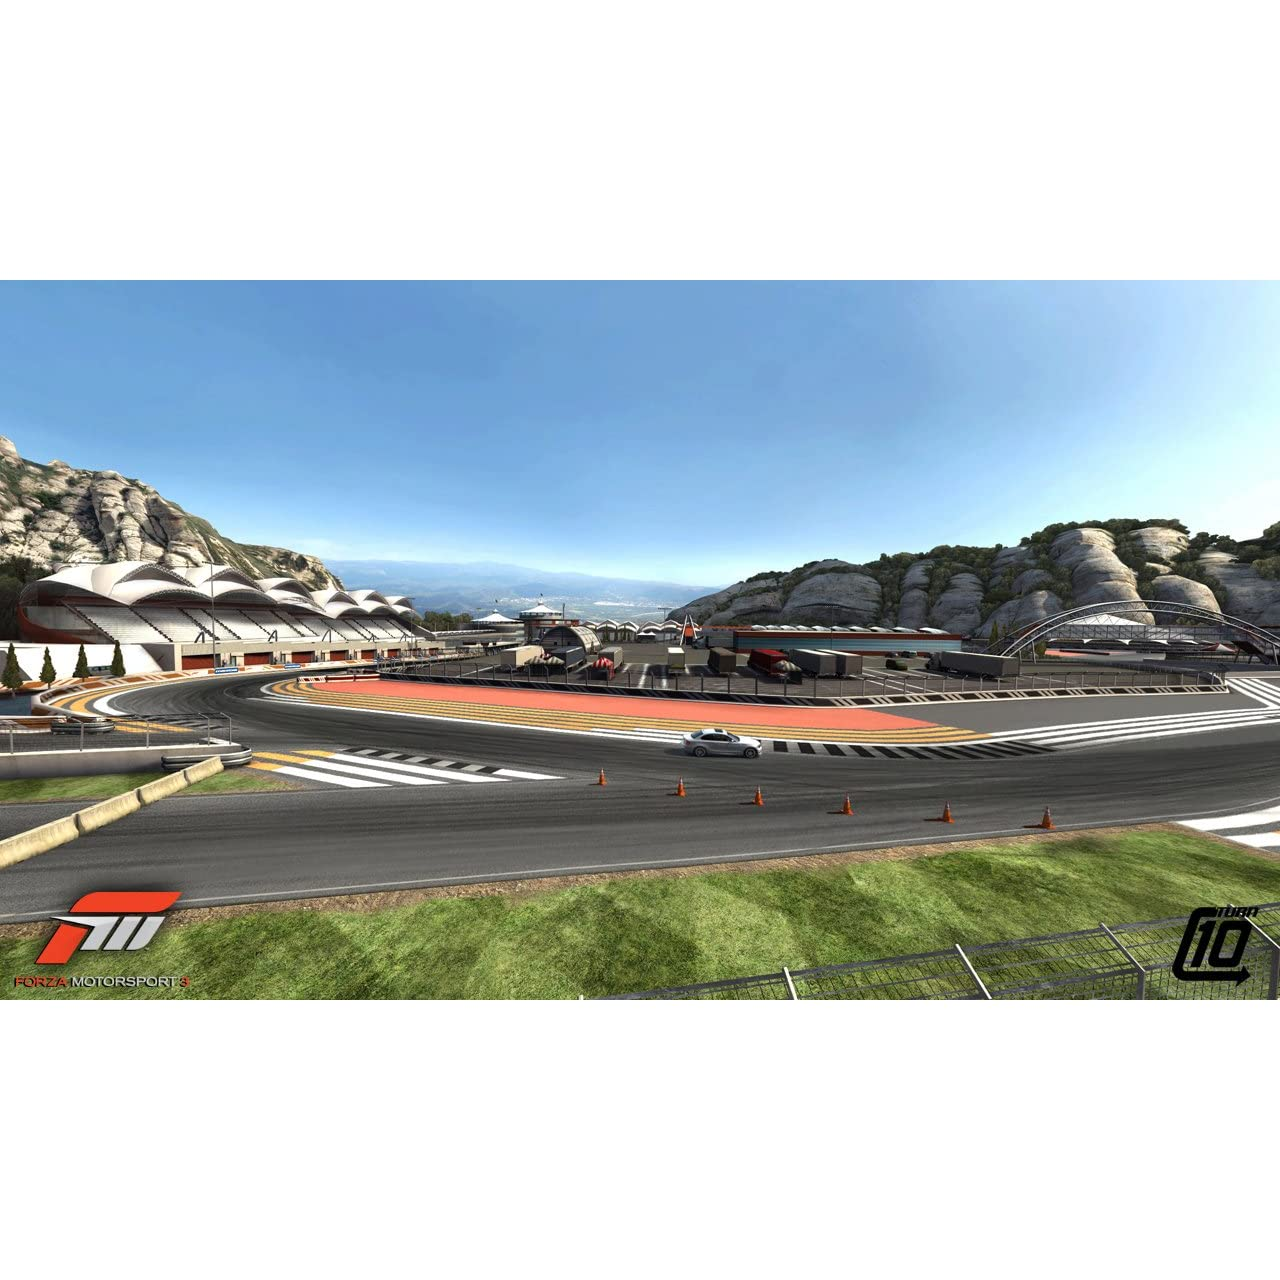 Online Game, Online Games, Video Game, Video Games, Xbox 360, Motor Sports,  Racing, Forza Motorsport 3